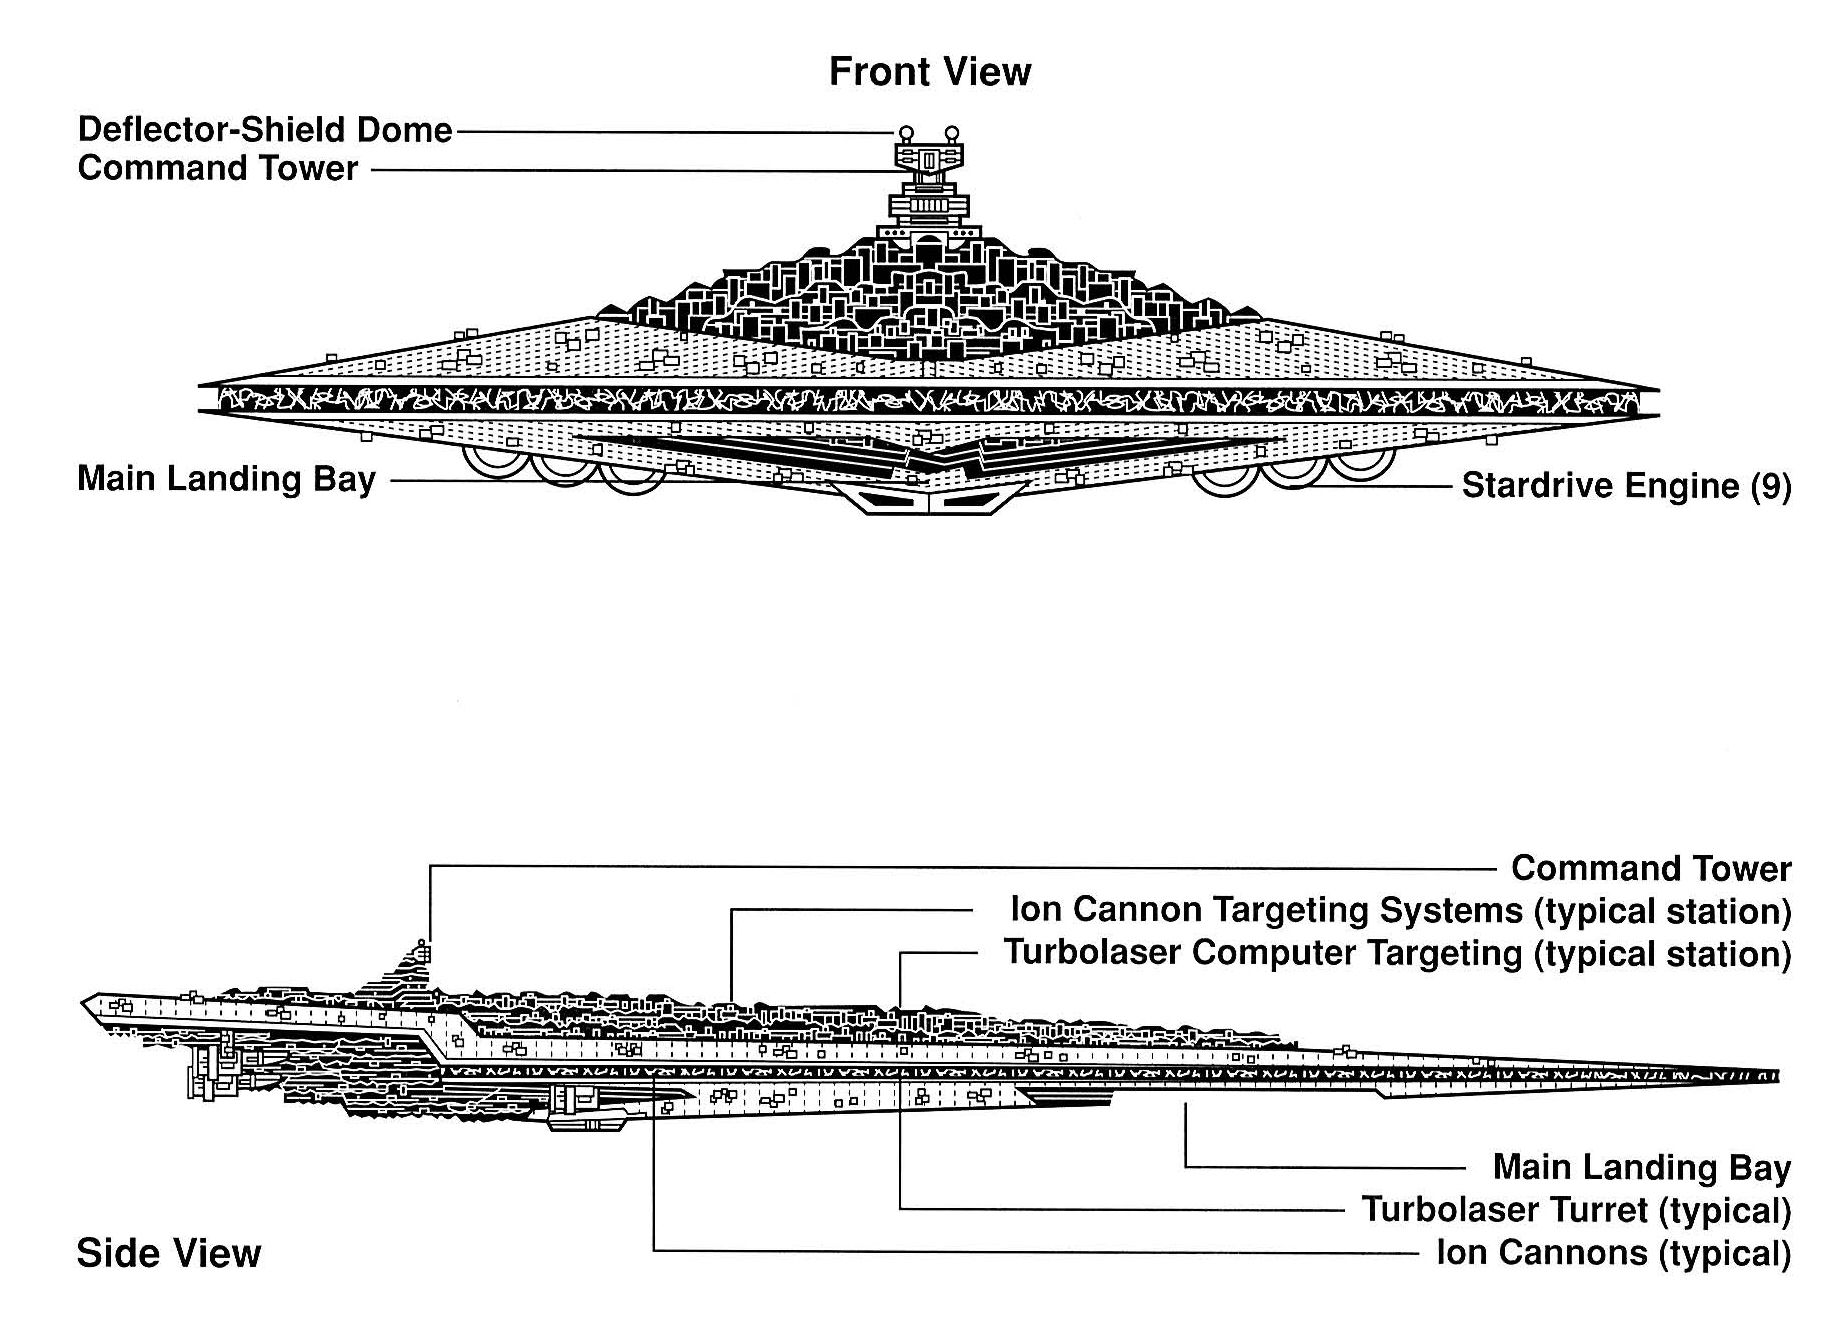 Star Destroyer Schematic Cannon Location Great Installation Of Free Download Wiring Diagram Executor Schematics From The Essential Guide To Vehicles And Vessels Rh Pinterest Com